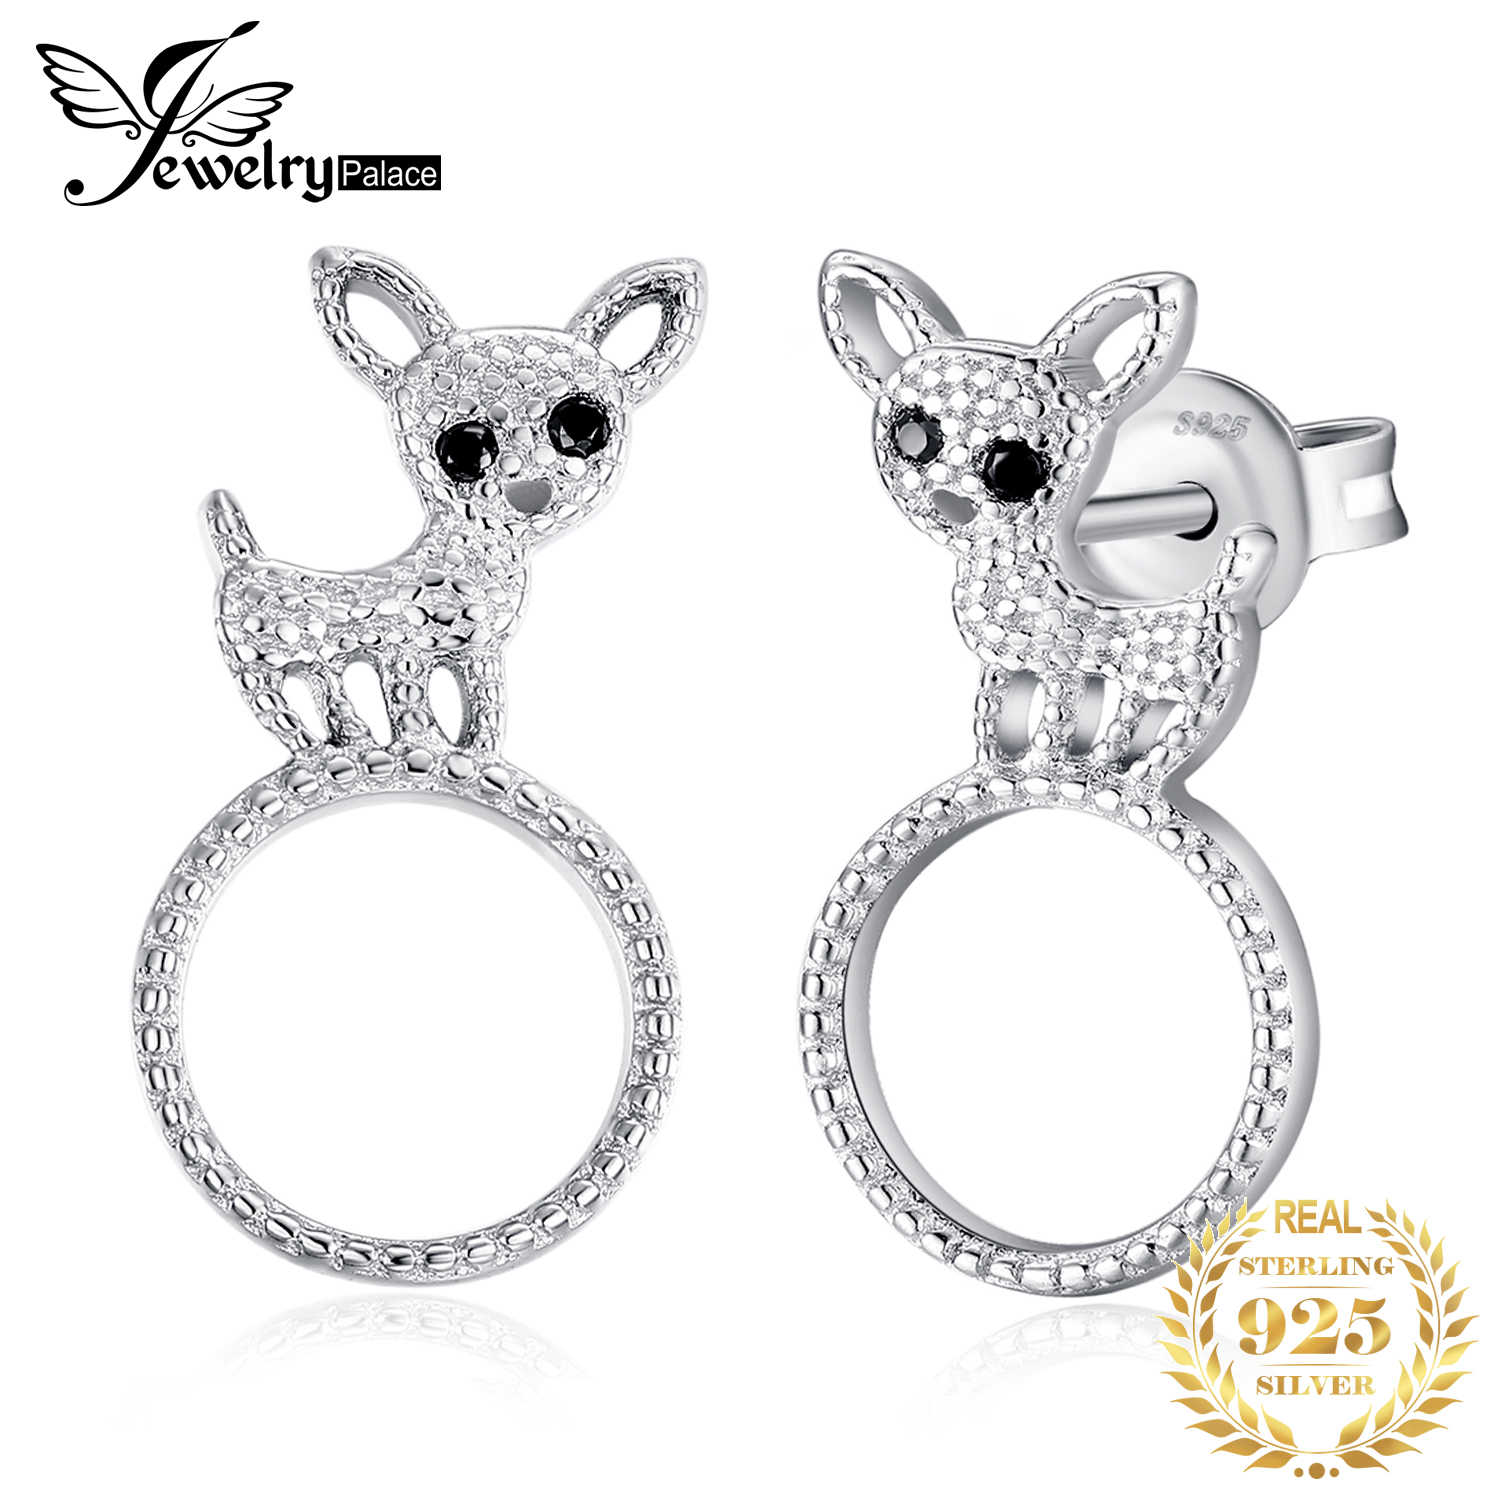 JewelryPalace Genuine Black Spinels Dog Milgrain Circular Stud Earrings 925 Sterling Silver